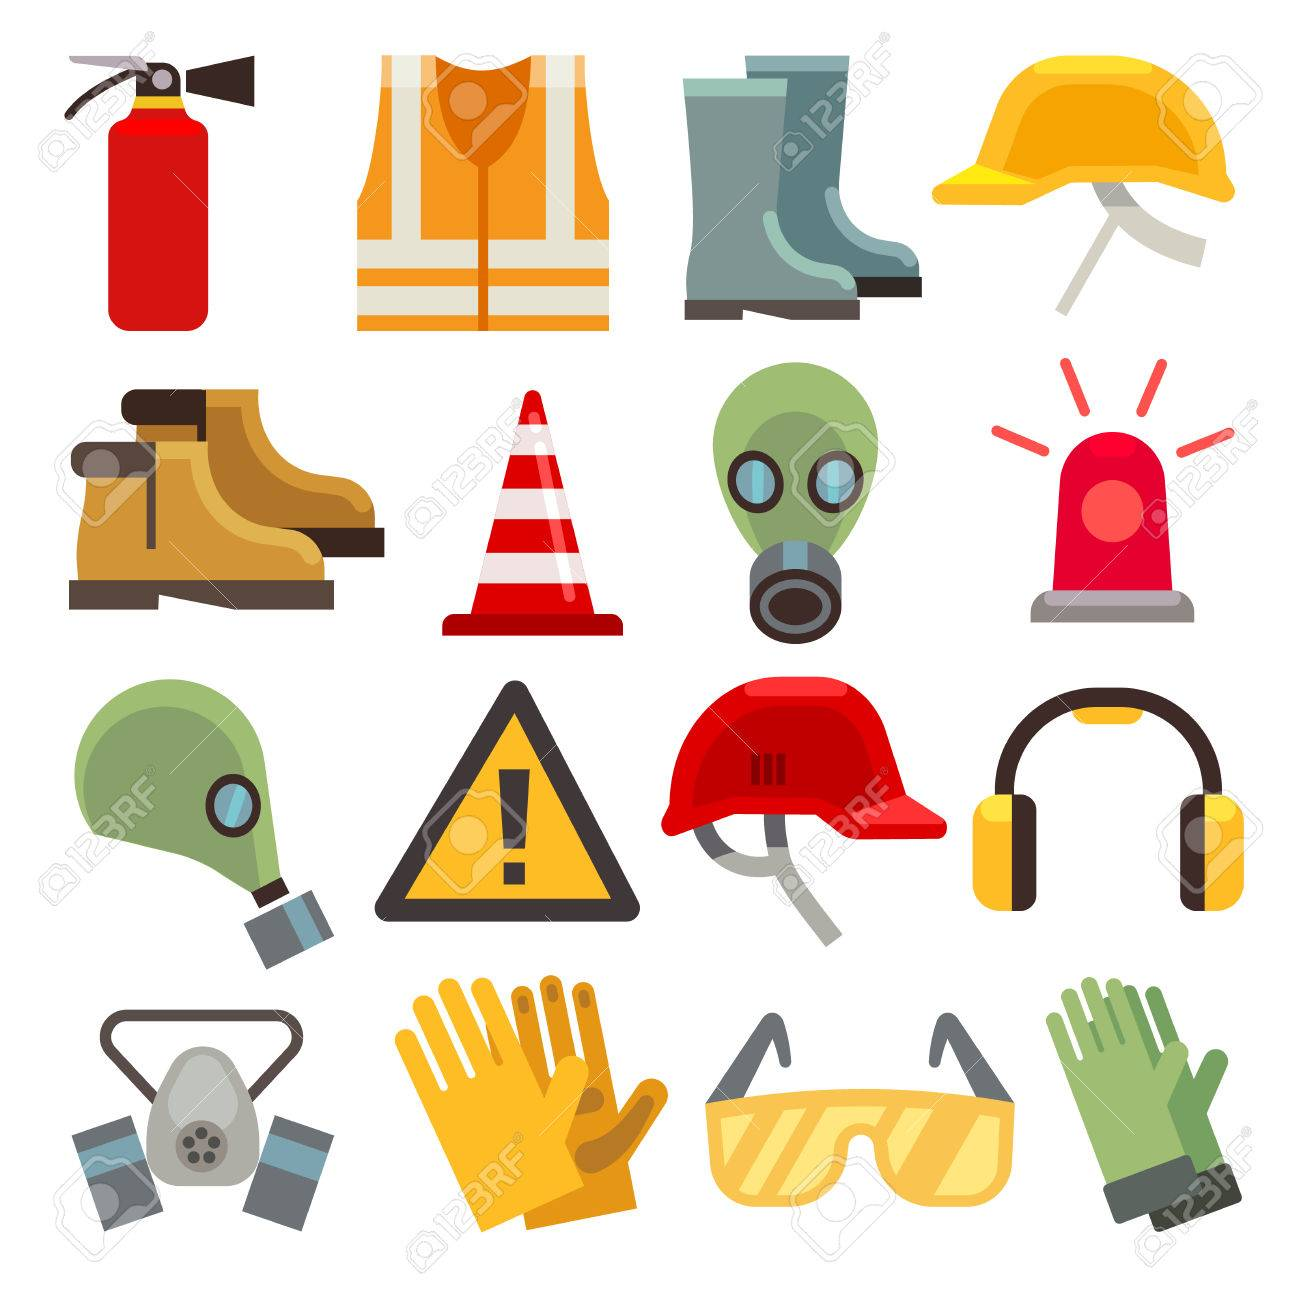 Safety work flat vector icons set. Workwear for safety, shoe and glove safety clothing, helmet and extinguisher illustration - 57404969